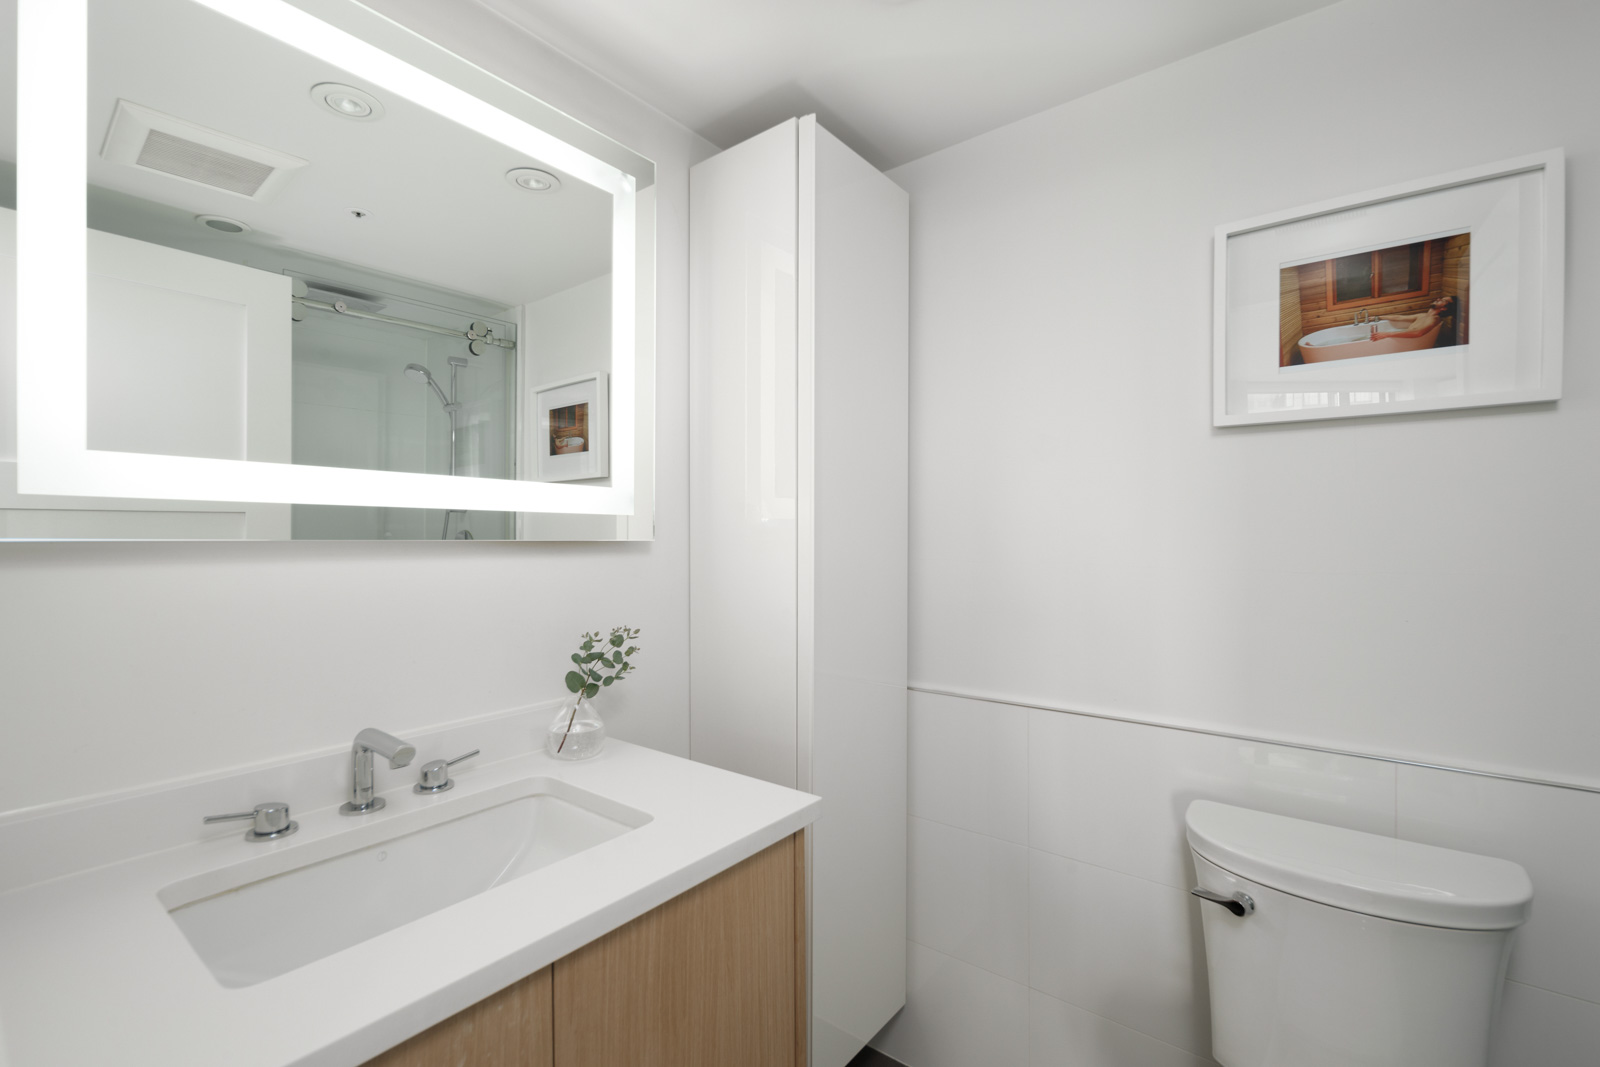 bedroom with white walls and hardwood floors in rental condo in the West End neighbourhood of Vancouver